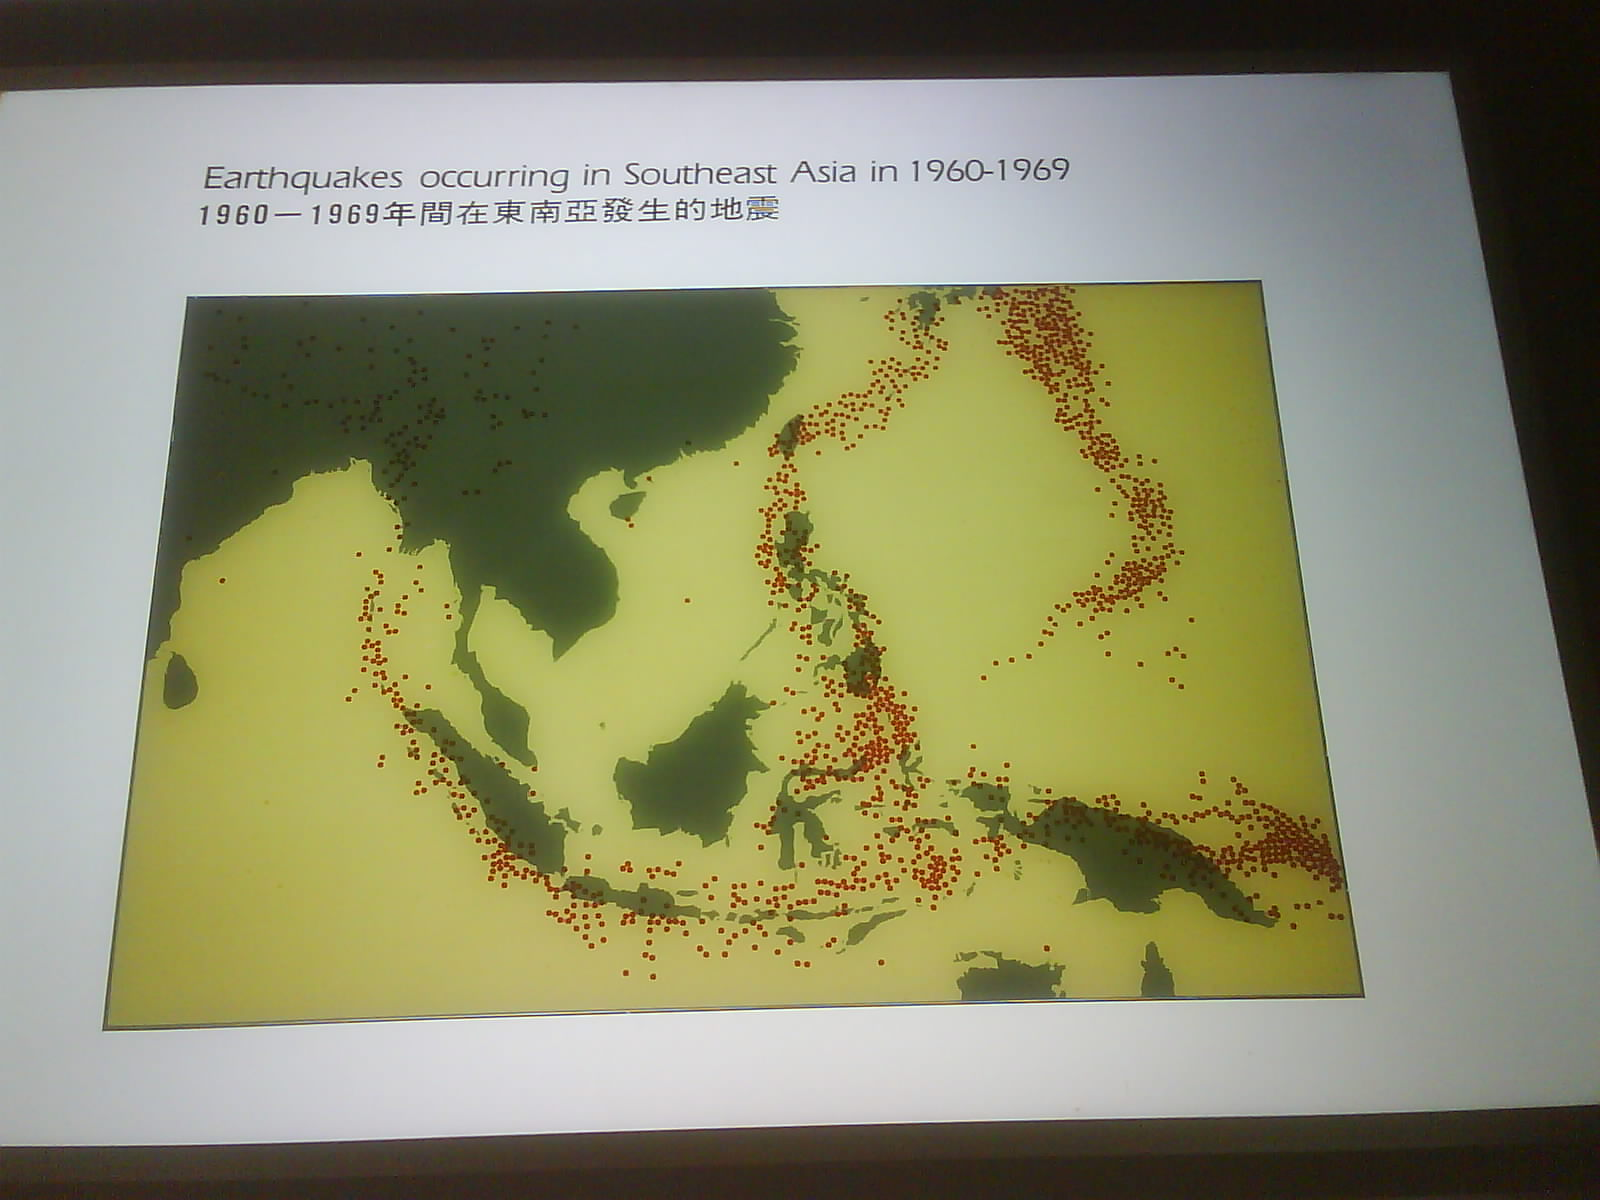 Map Of Asia 1960.File Map Of Earthquakes Occurring In South East Asia In 1960 1969